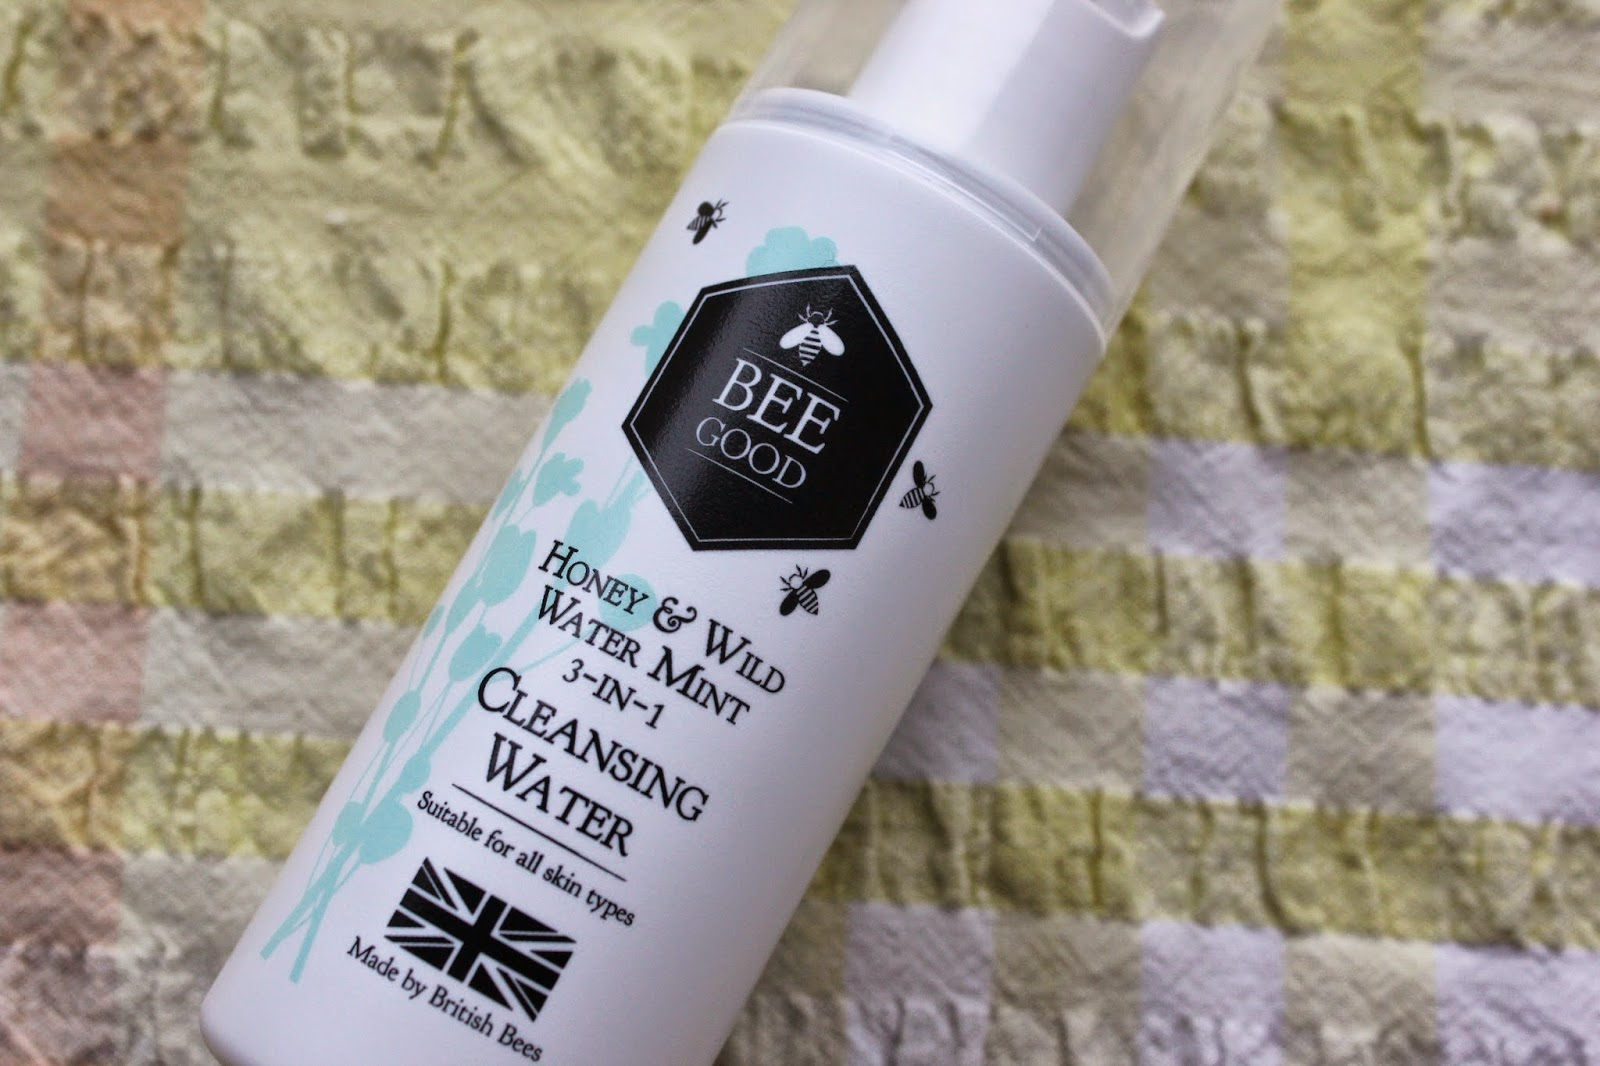 blogger-bbloggers-beauty-bee-good-cleansing-water-skincare-review